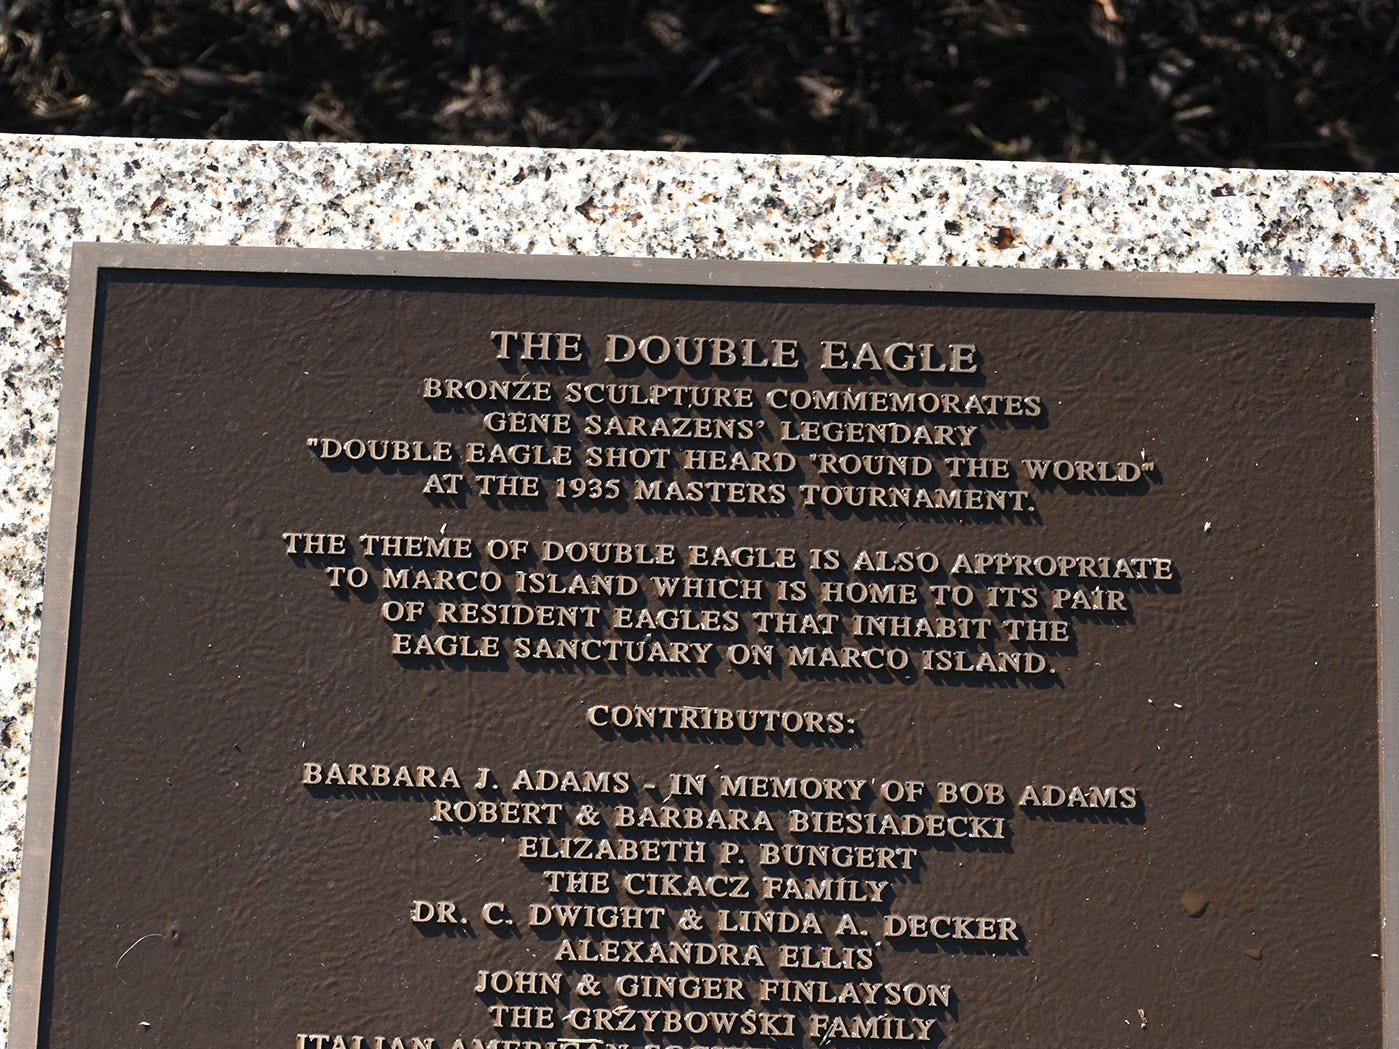 A list of the sculpture's donors. Friday morning, the Marco Island Foundation for the Arts unveiled a plaque with the names of donors who have contributed to the purchase of the Double Eagle sculpture at Sarazen Park on Marco.